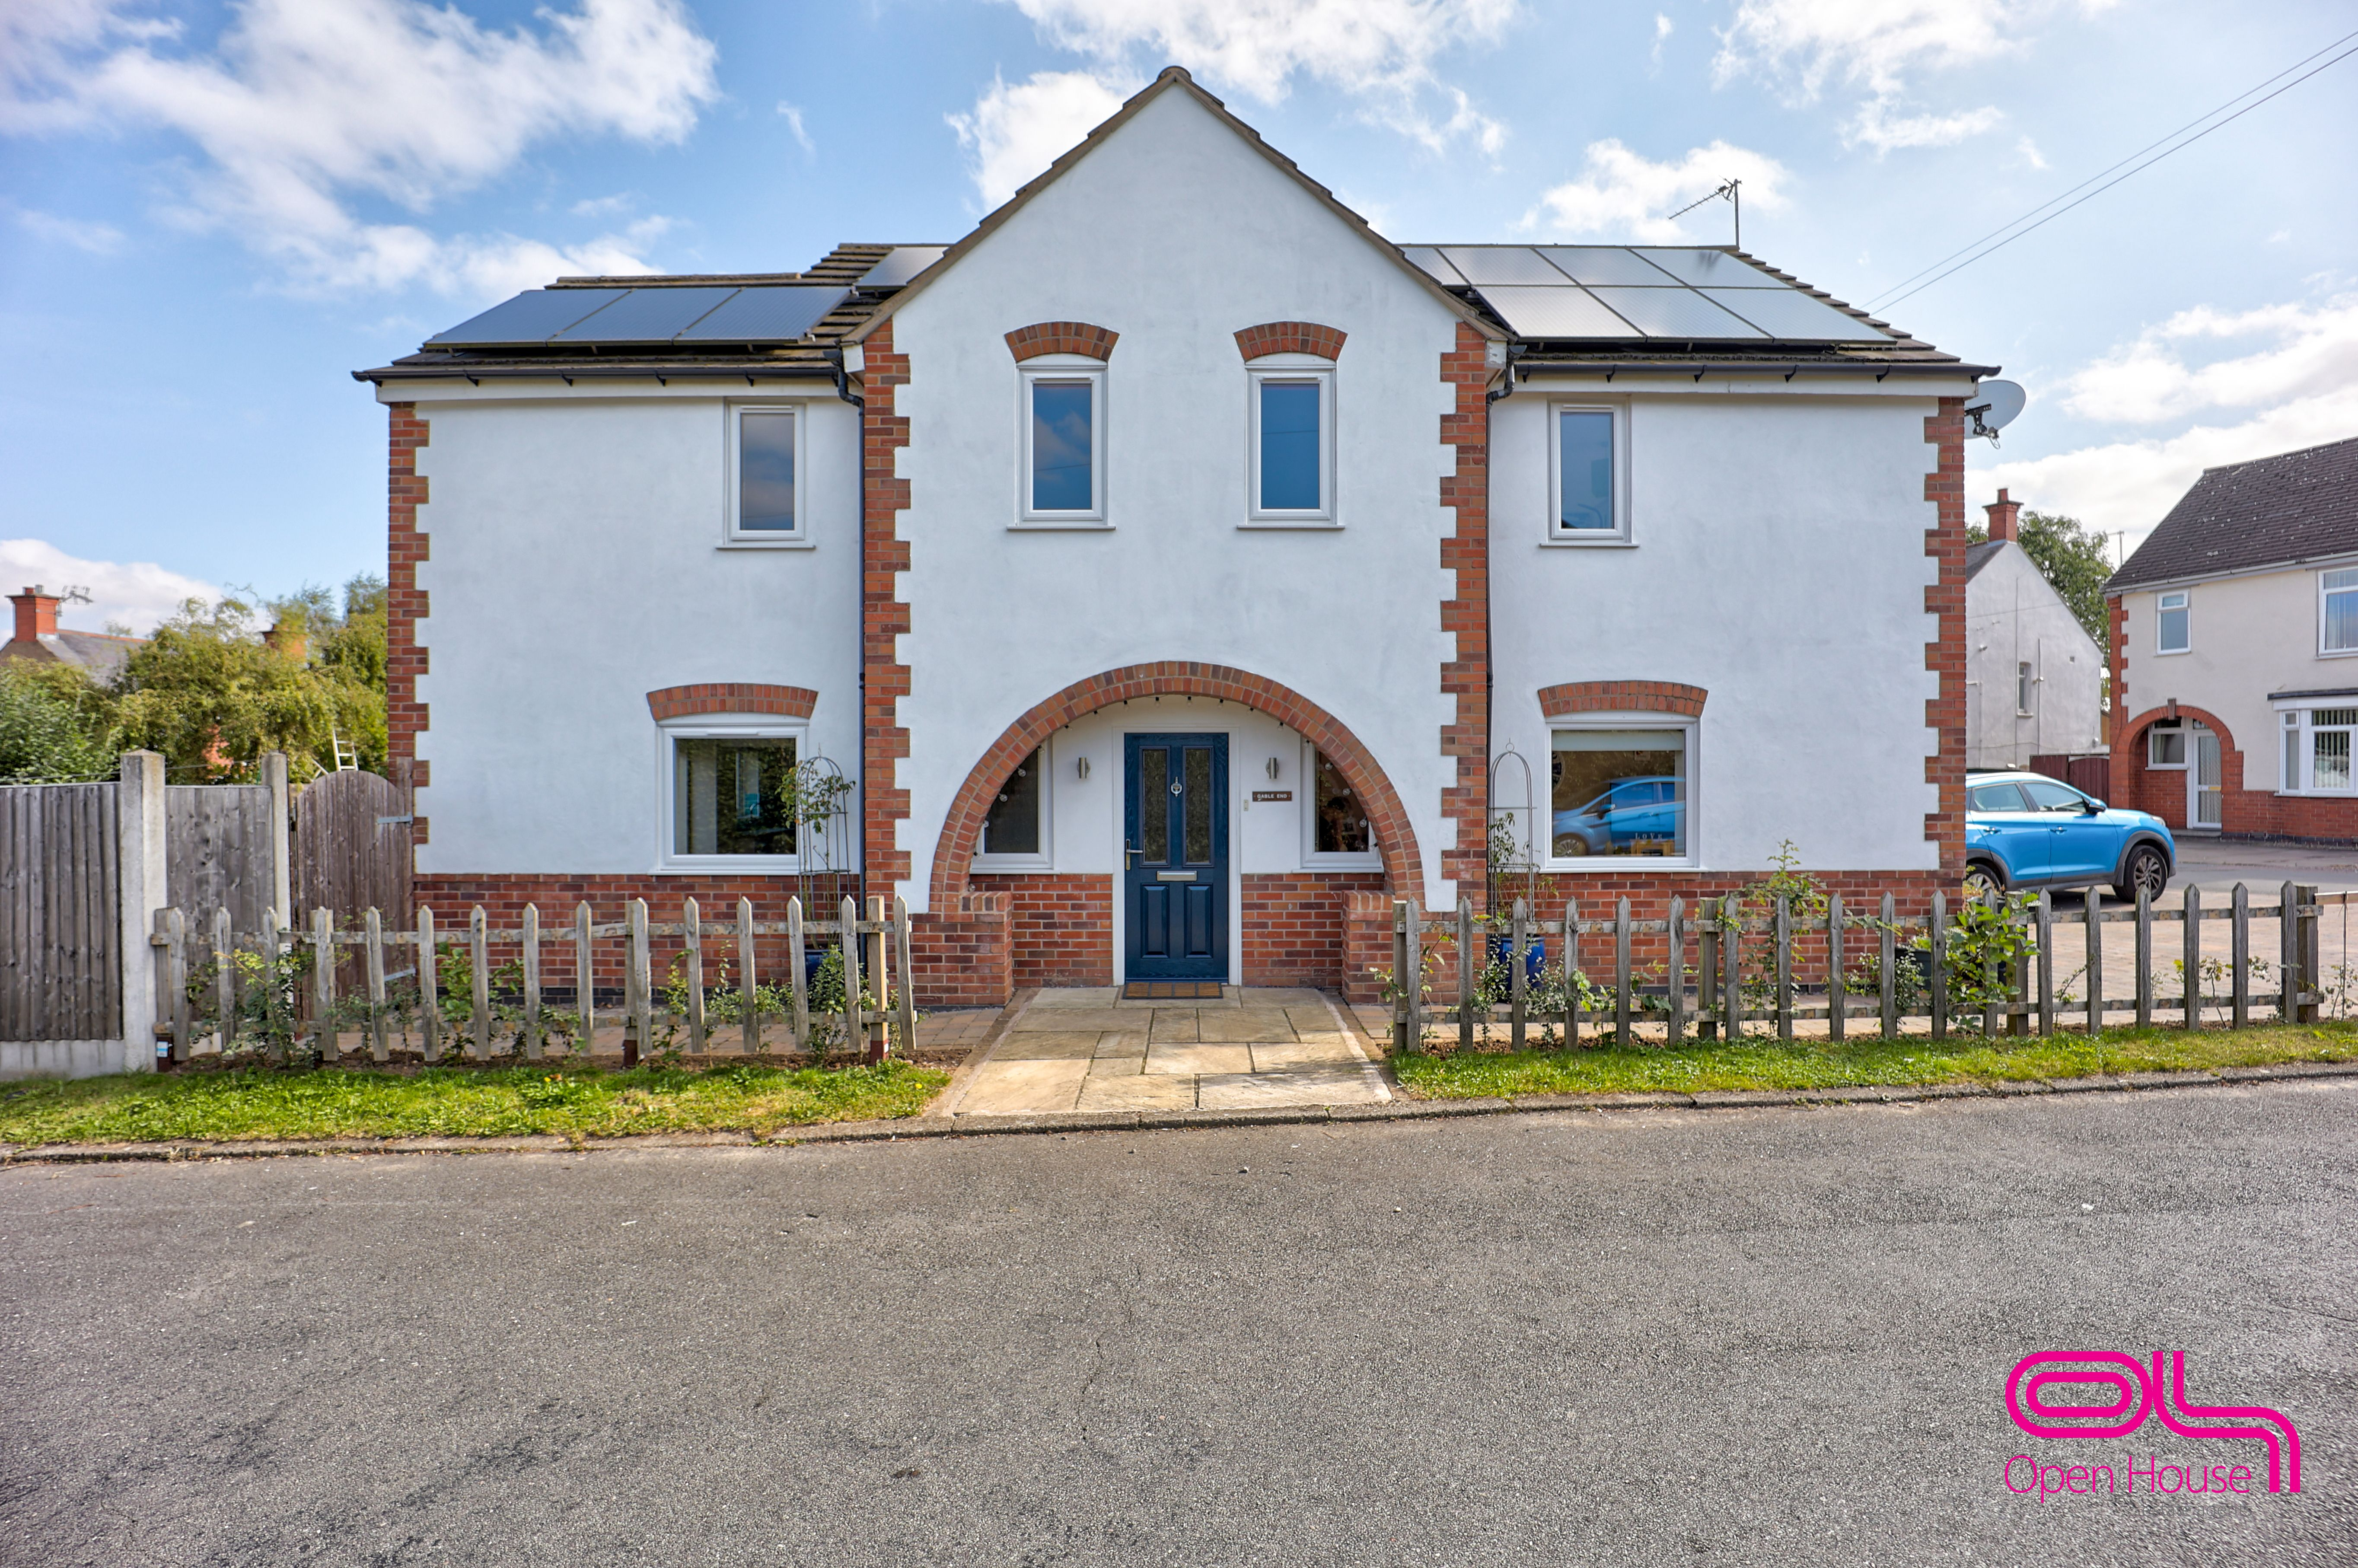 4 bed detached house for sale in Flamville Road, Burbage, LE10, Hinckley - Property Image 1